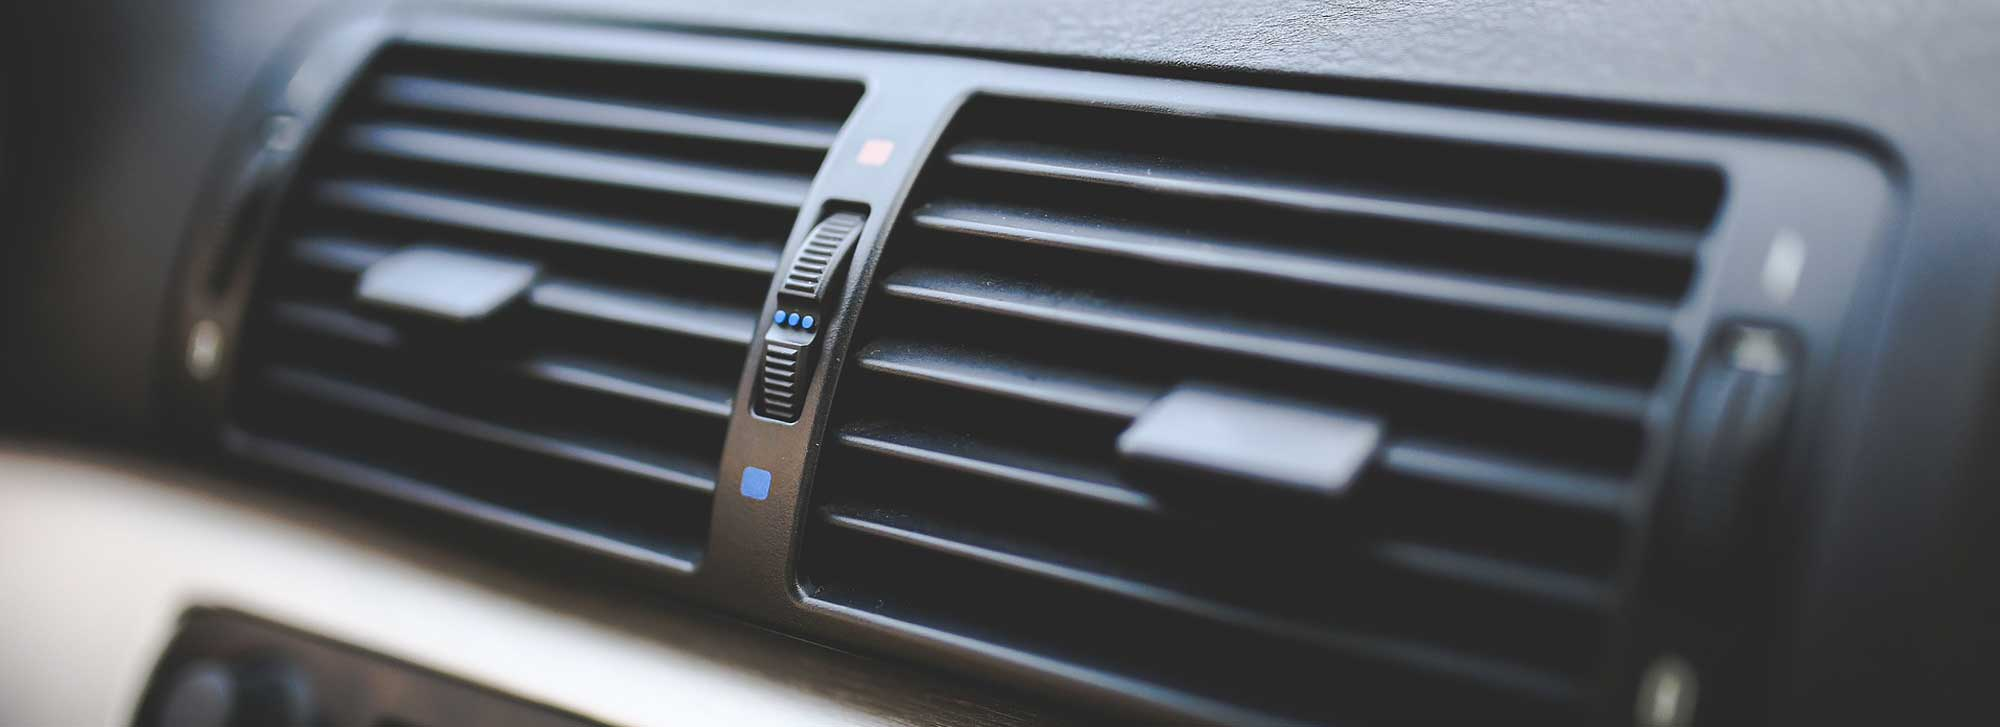 Heating and Cooling System Repair